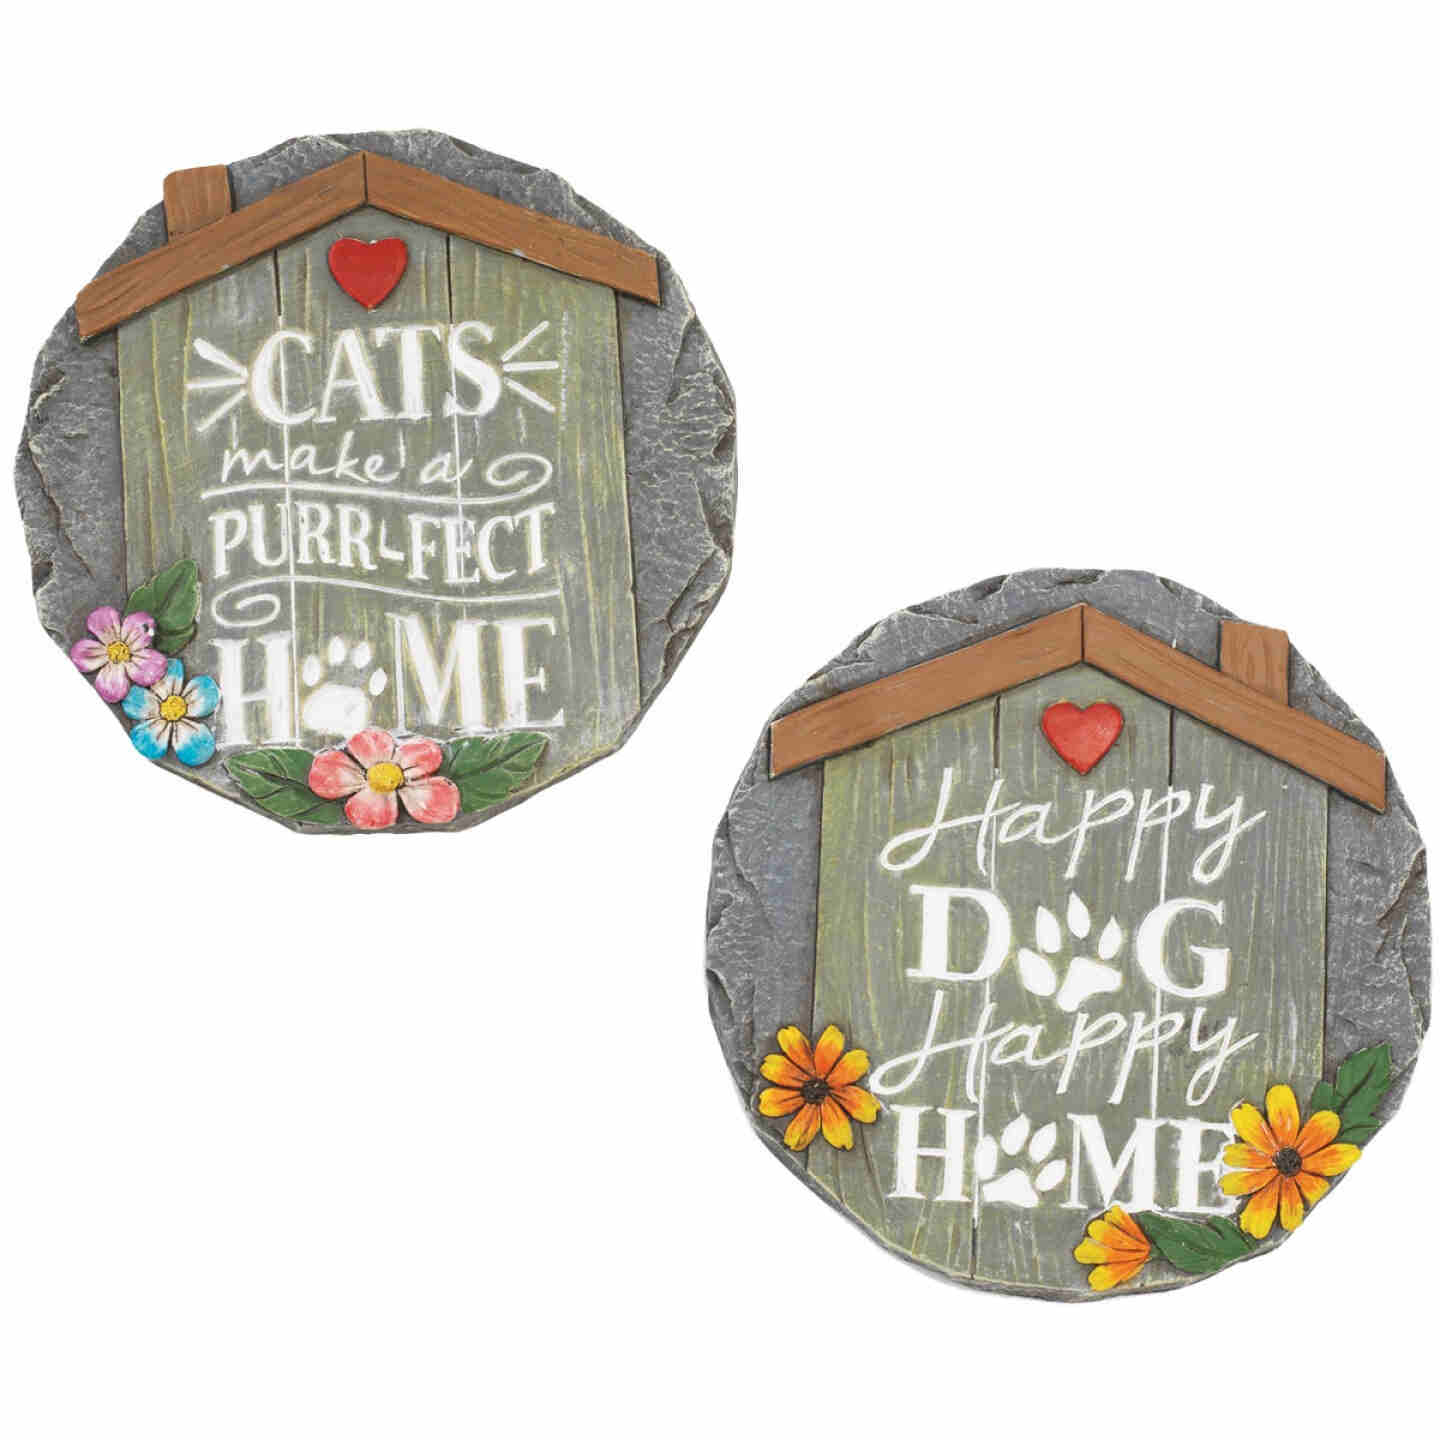 Mission Gallery 10 In. Cement Dog or Cat Stepping Stone Lawn Ornament Image 1